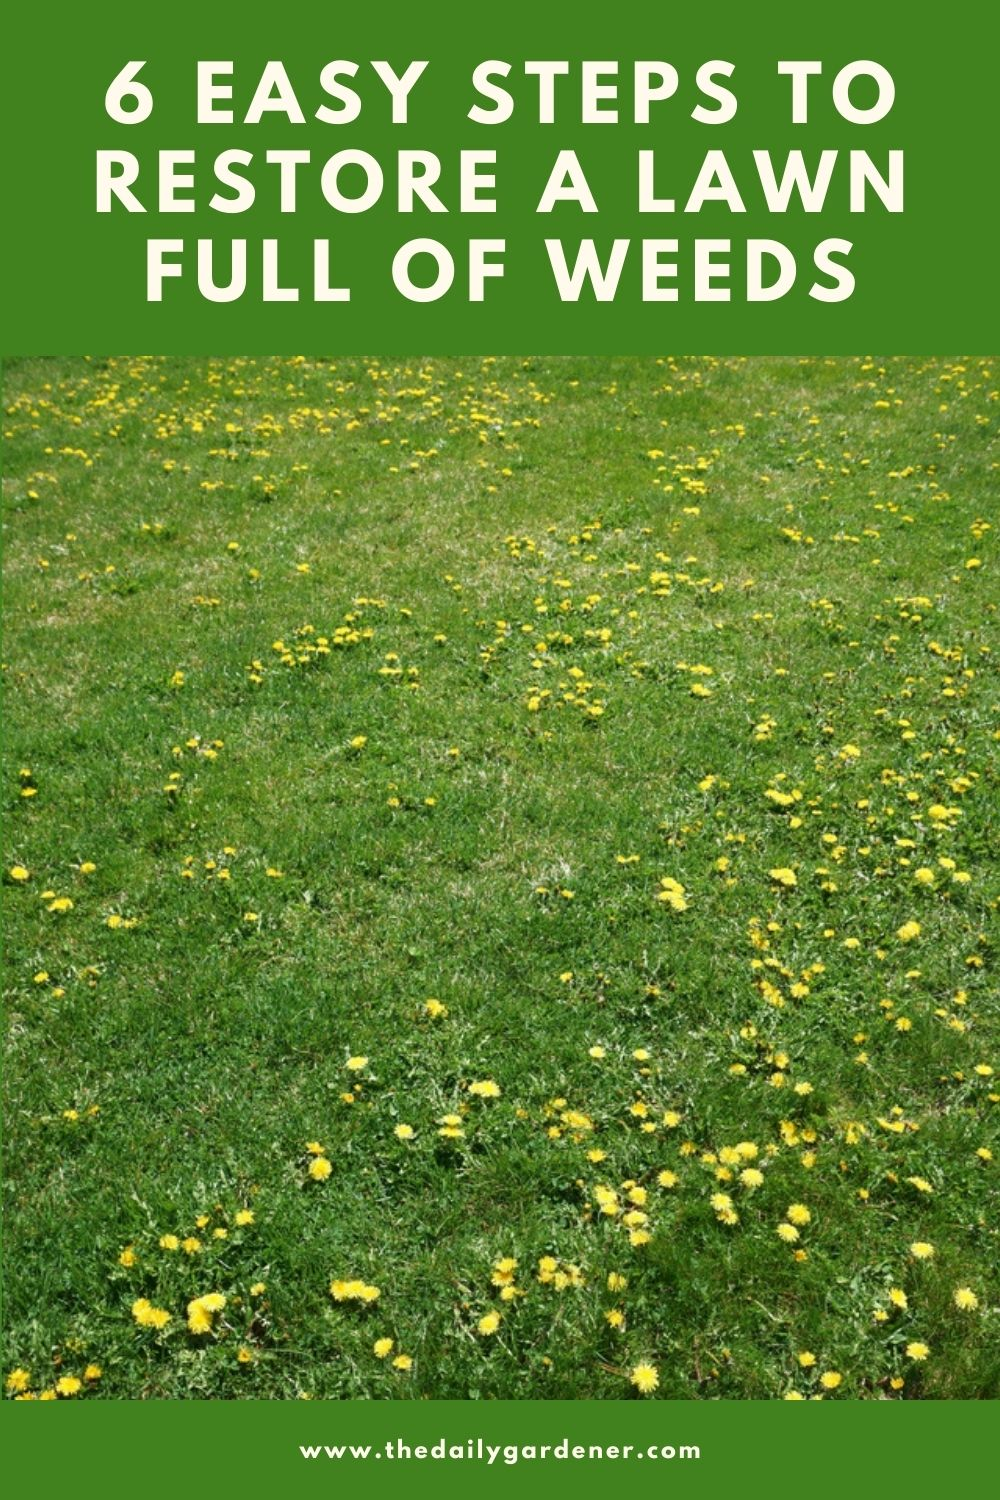 6 Easy Steps to Restore a Lawn Full of Weeds 2